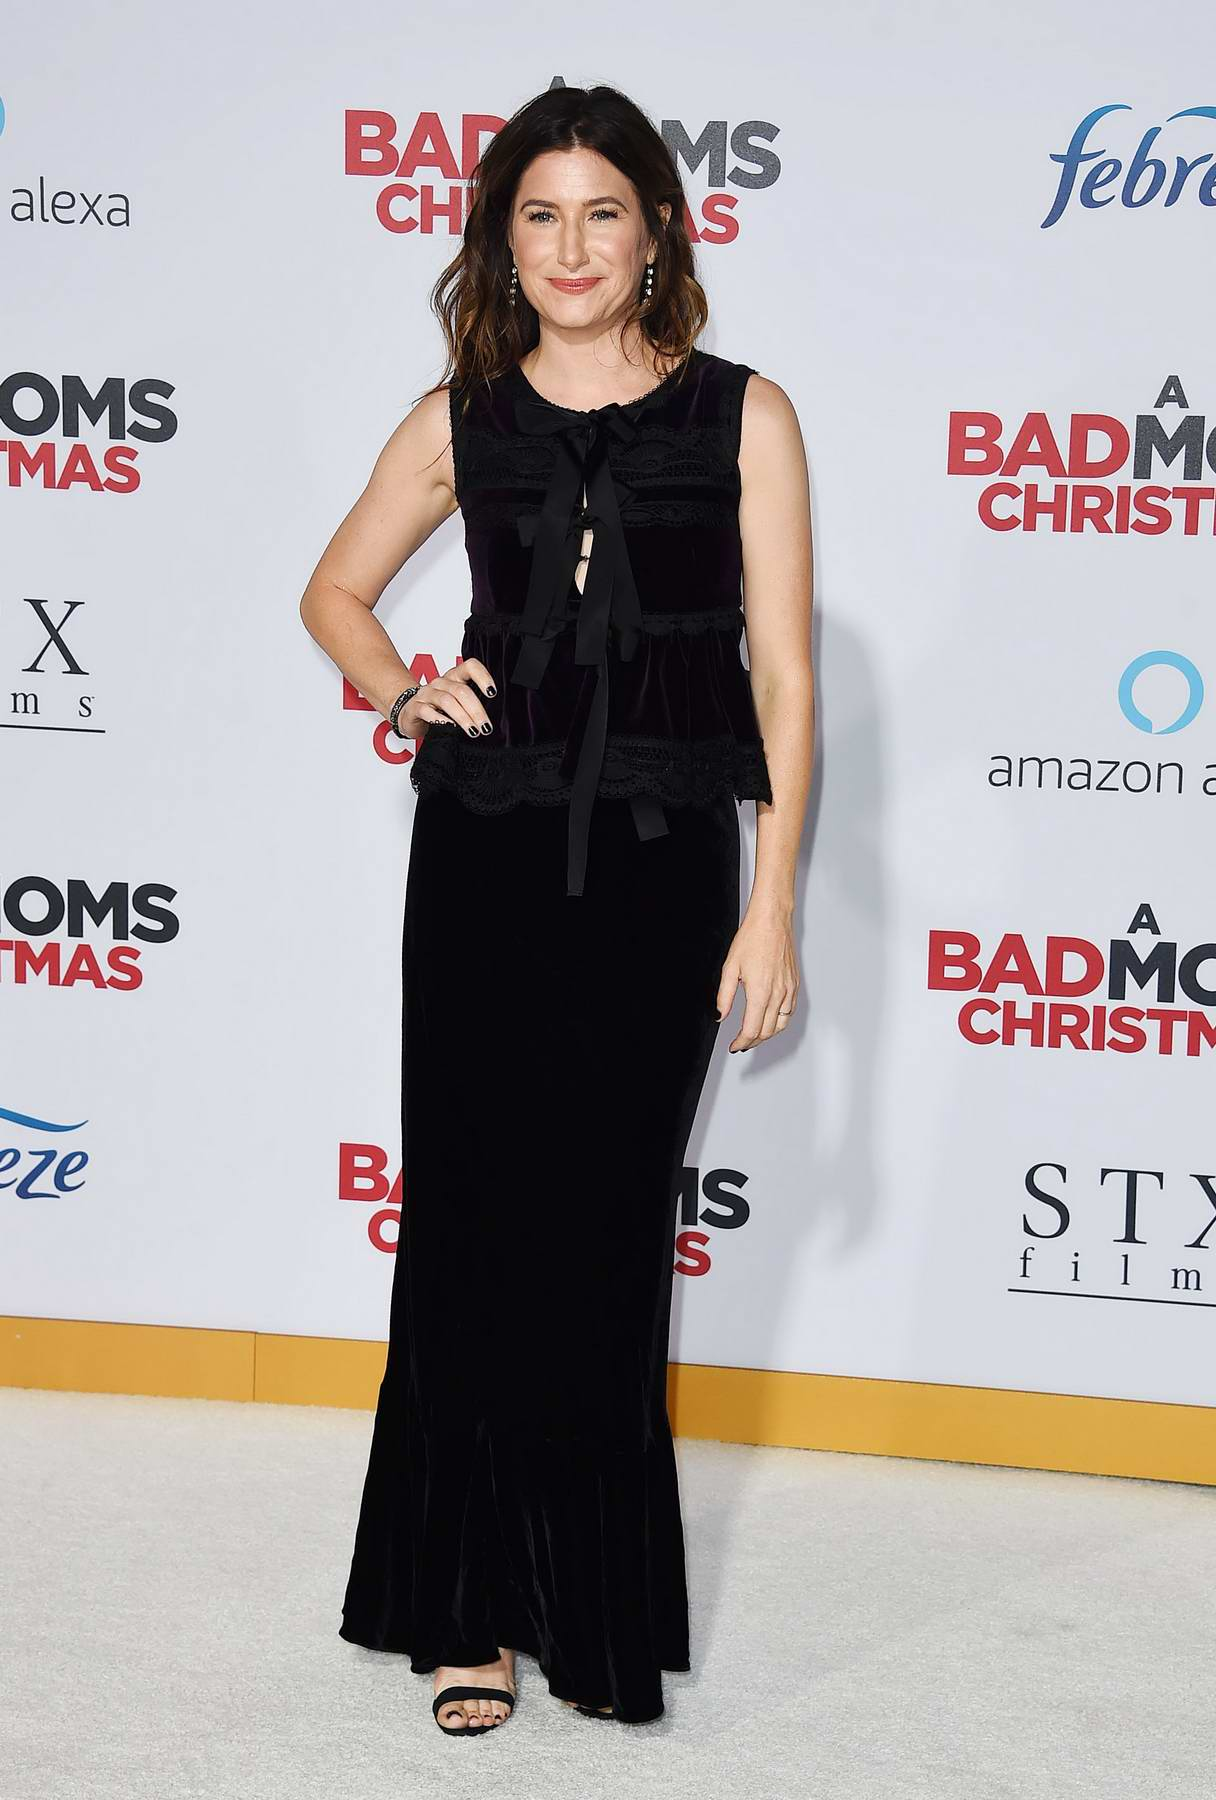 Kathryn Hahn at the premiere of 'A Bad Moms Christmas' in Westwood, California